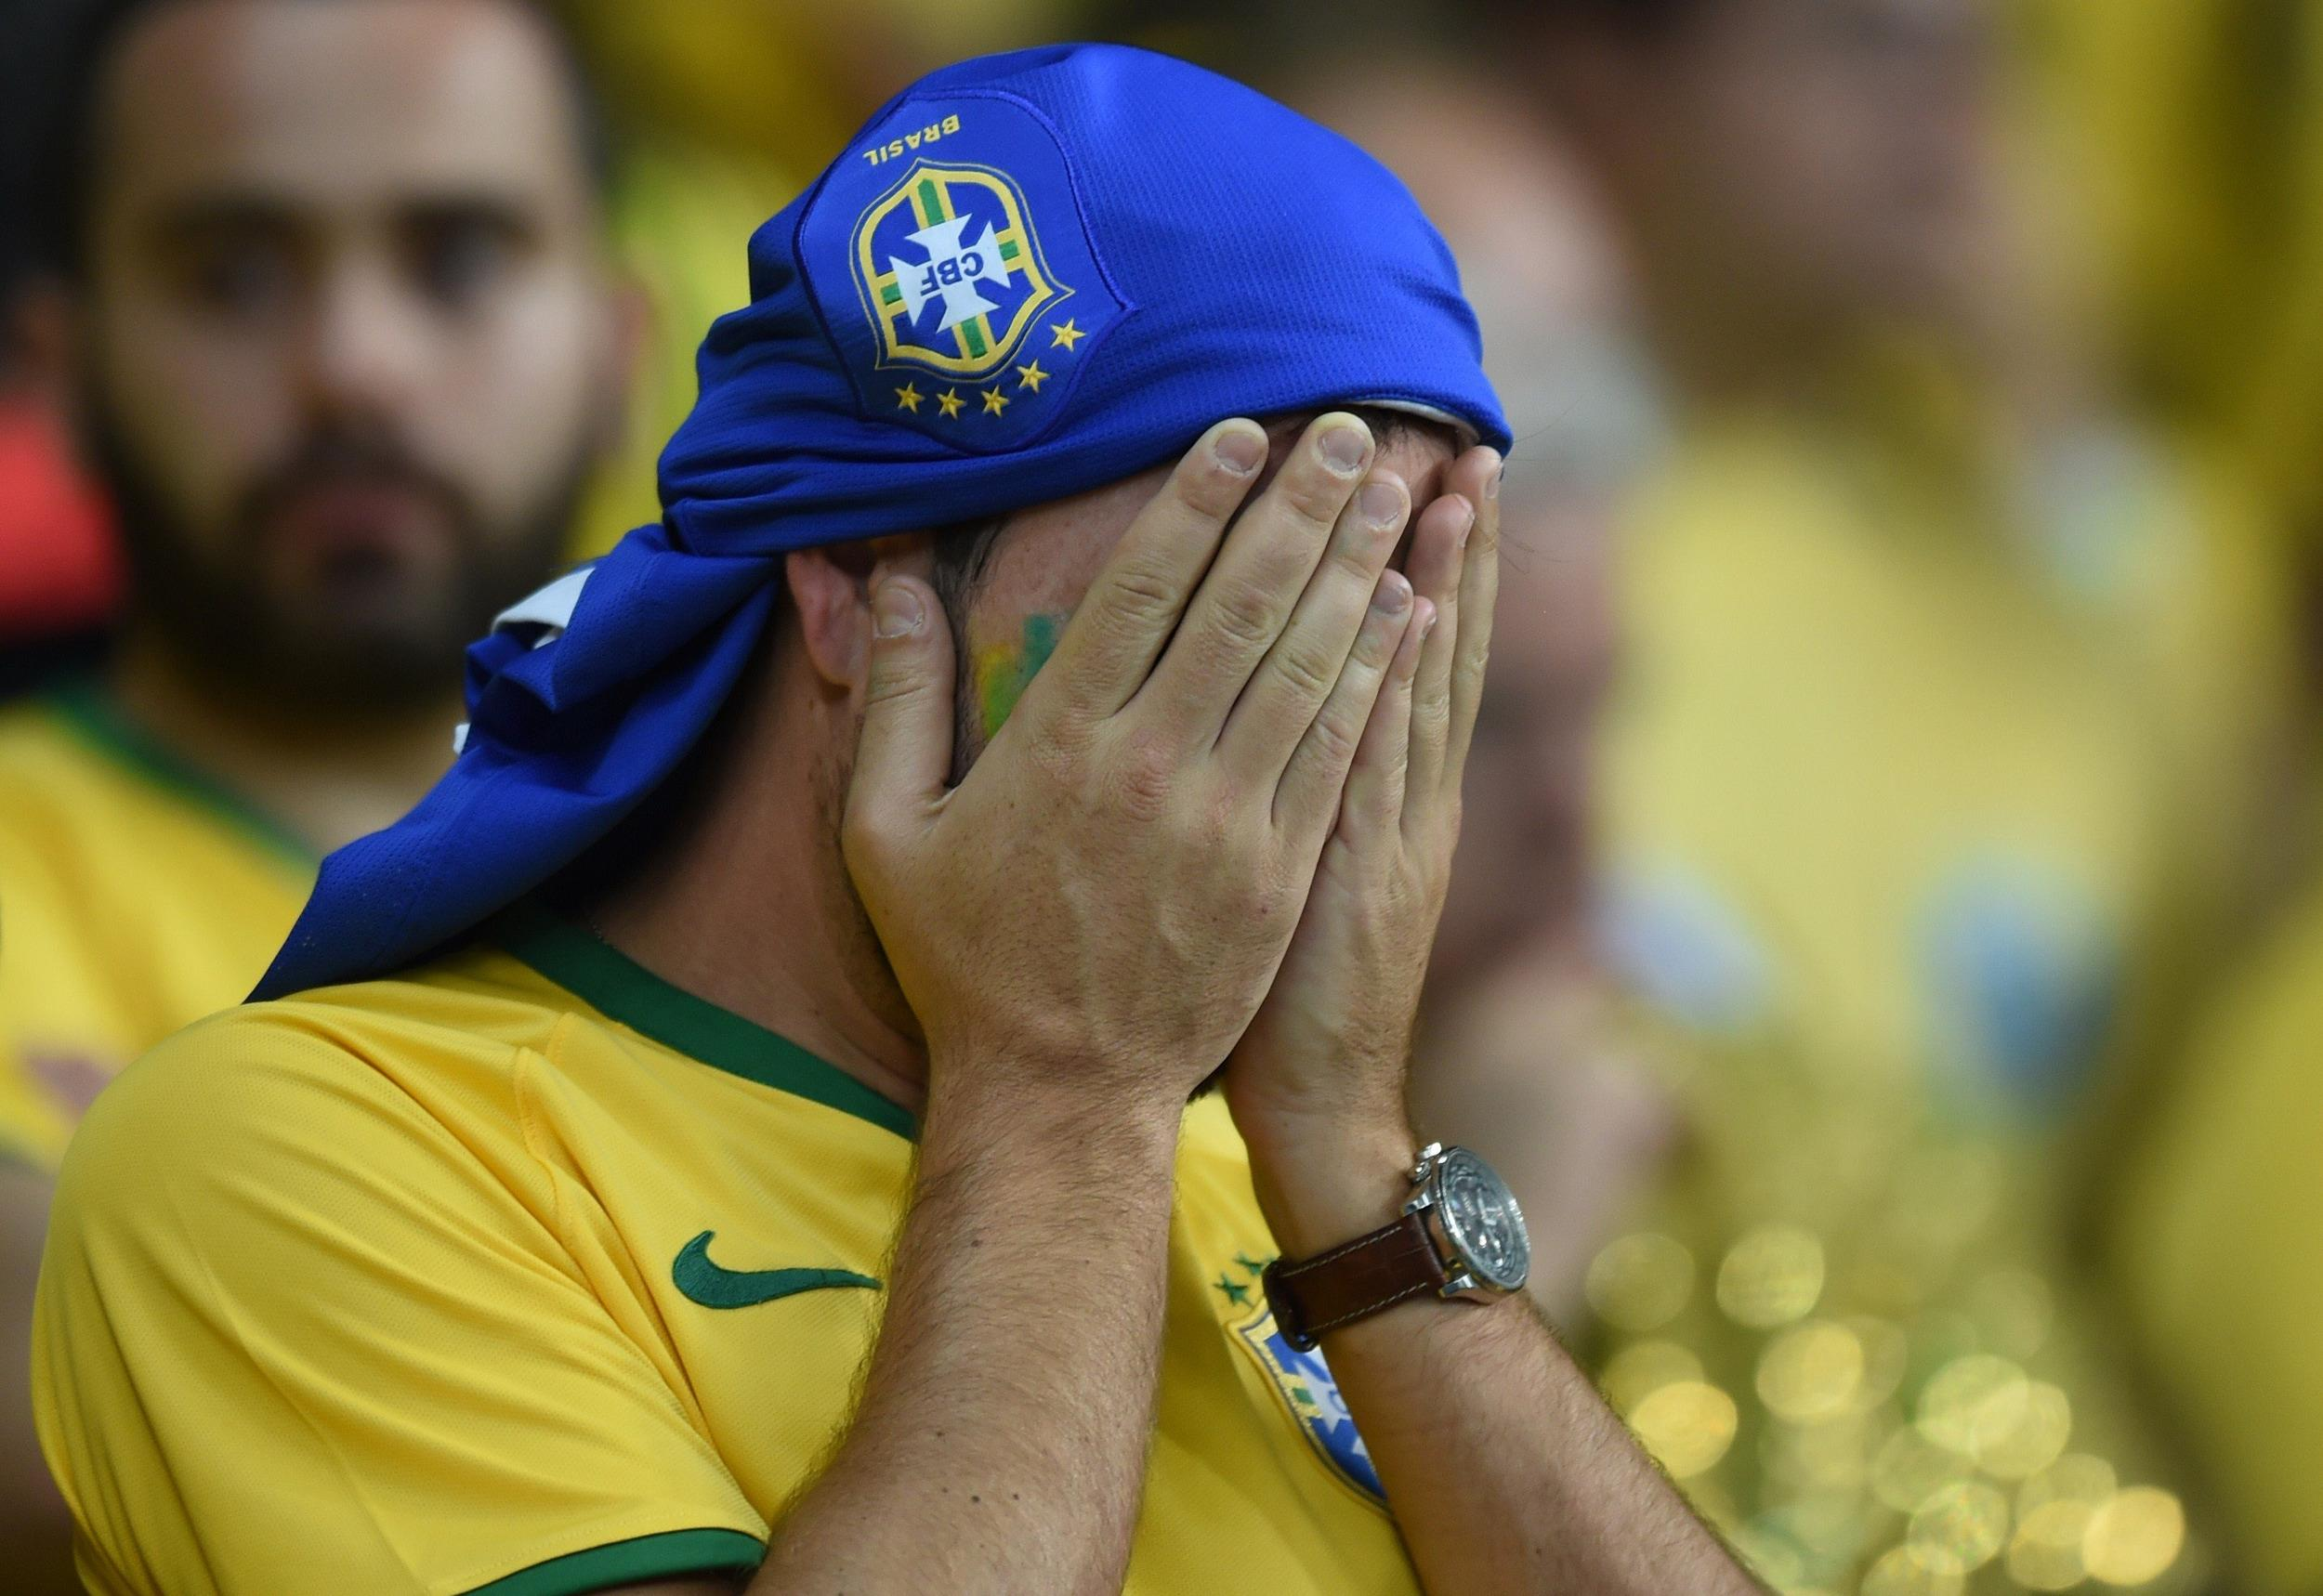 Image: Brazil's 7-1 loss to Germany was a blow to the country's confidence.